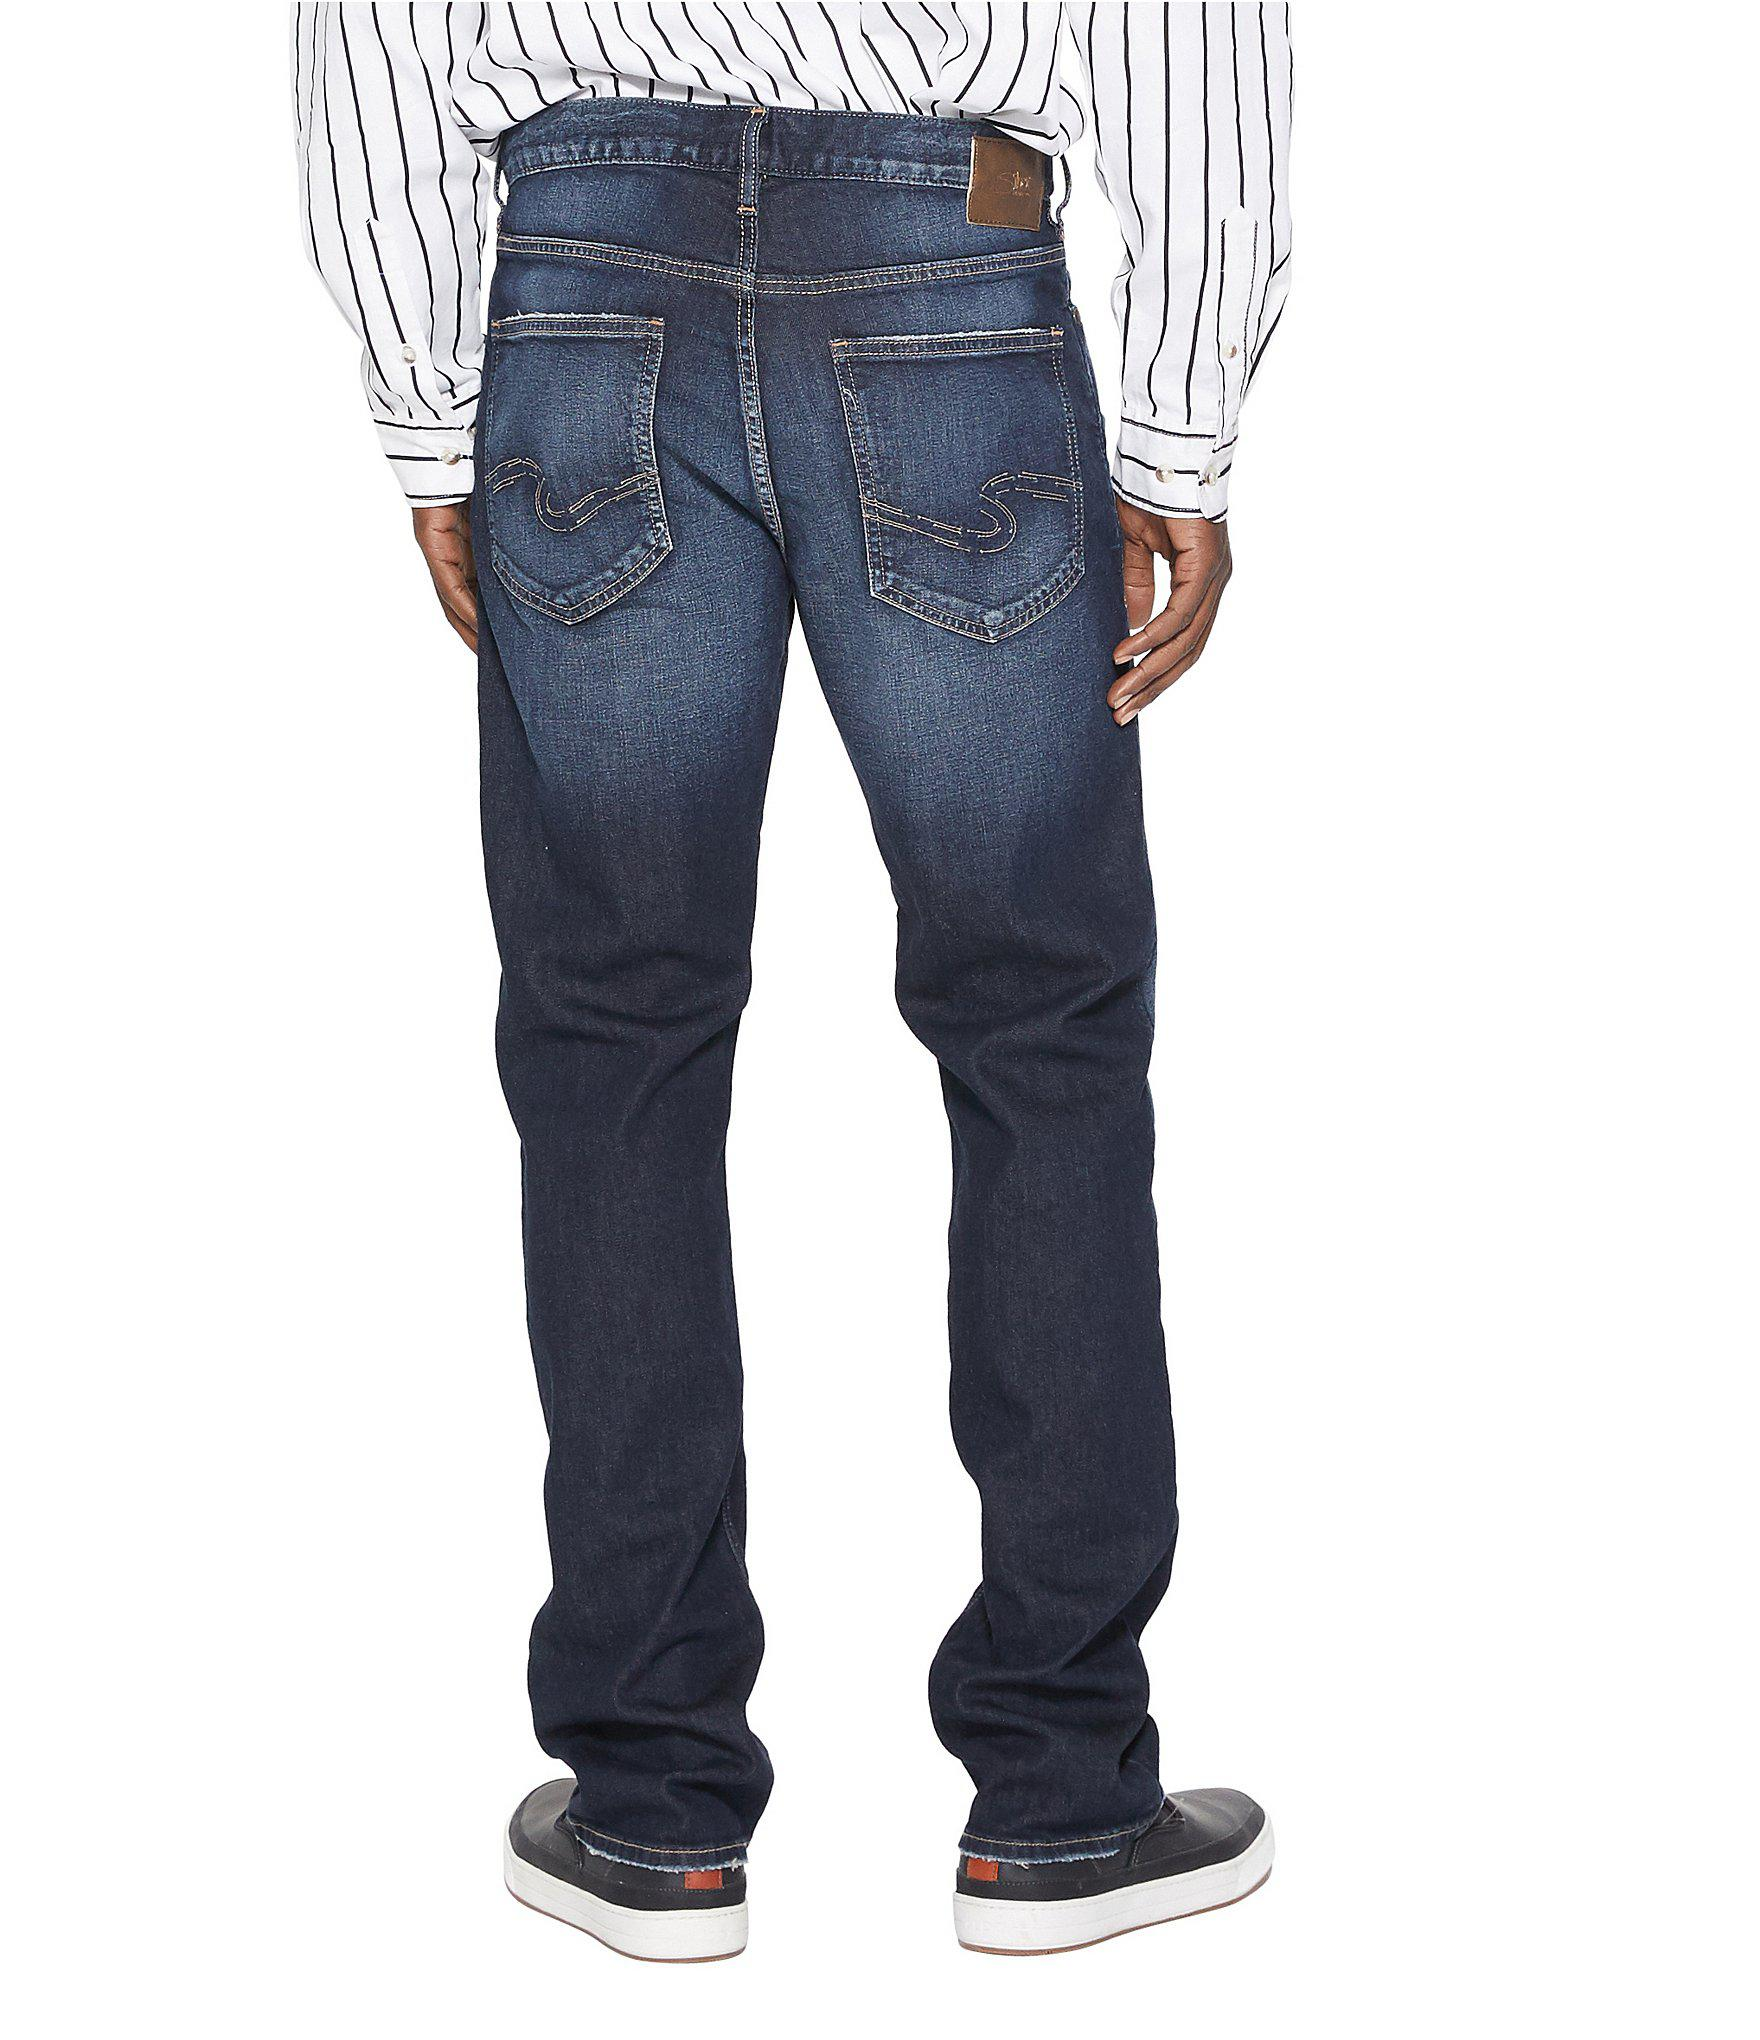 9849b16e928 Lyst - Silver Jeans Co. Grayson Easy-fit Straight Leg Jeans in Blue ...